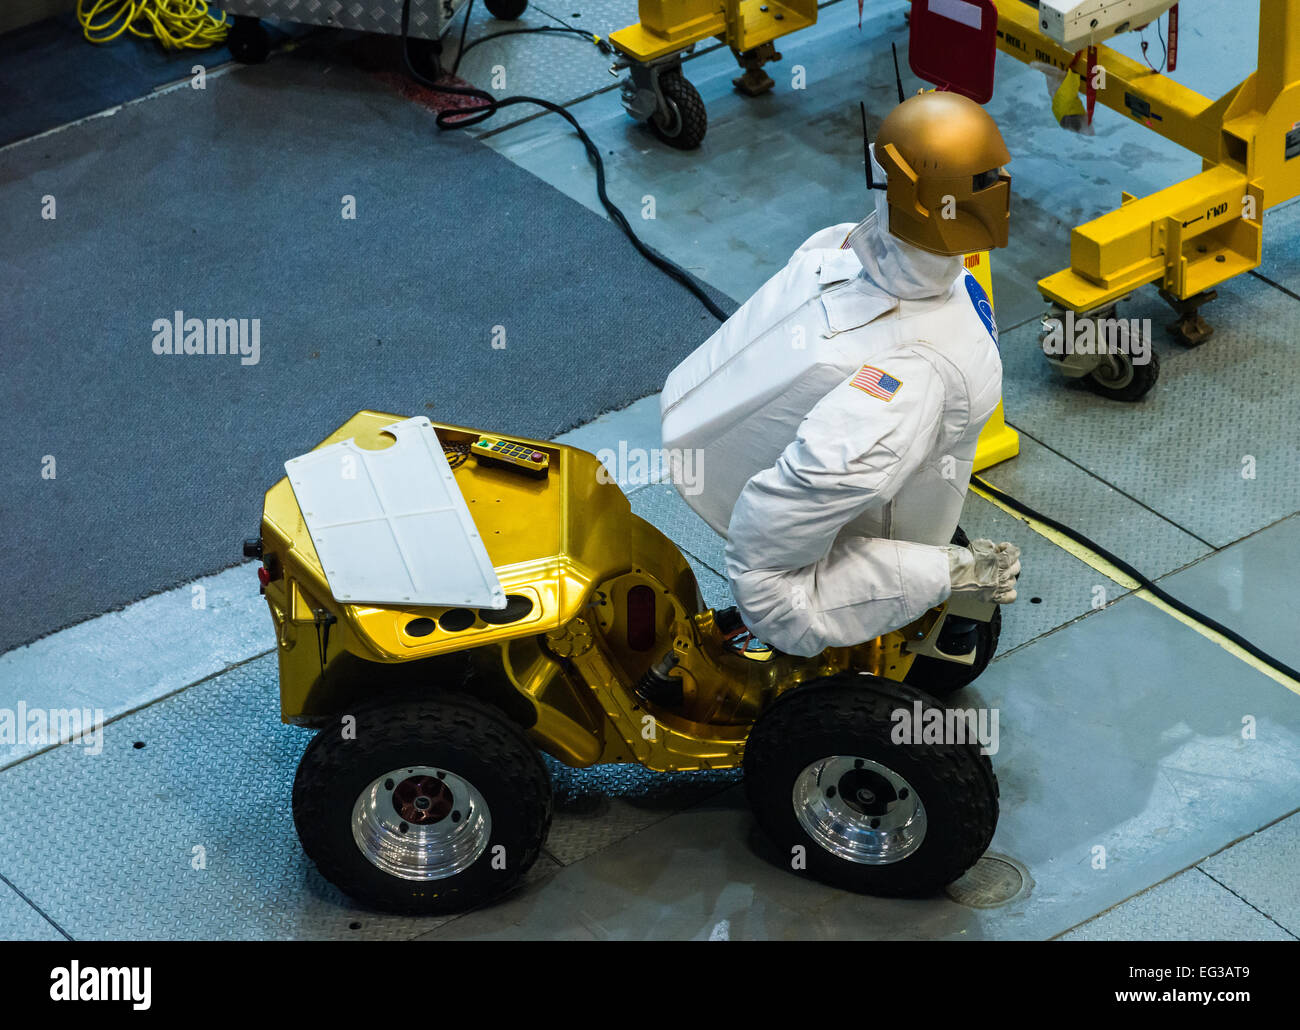 A human-like robot is tested inside a facility at NASA Johnson Space Center, Houston, Texas, USA. - Stock Image